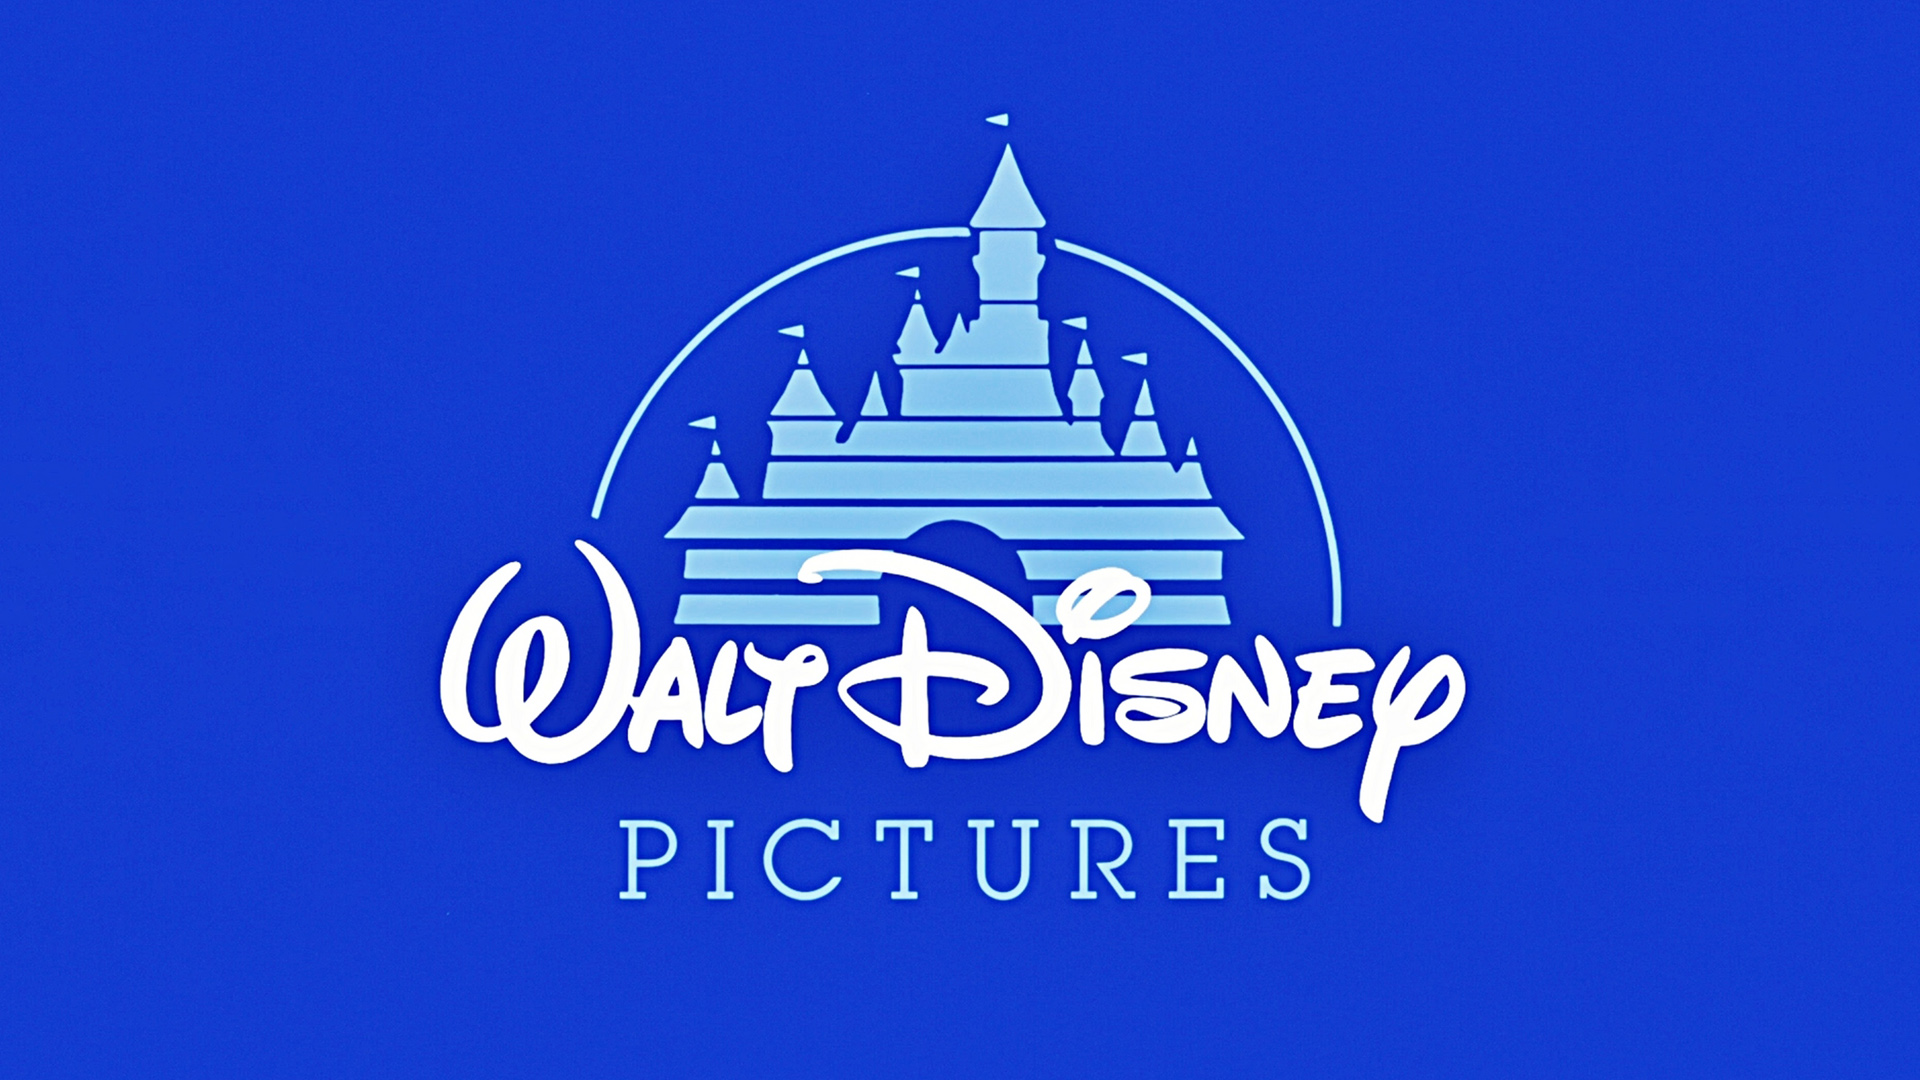 Amazing Warner Bros Pictures & Backgrounds